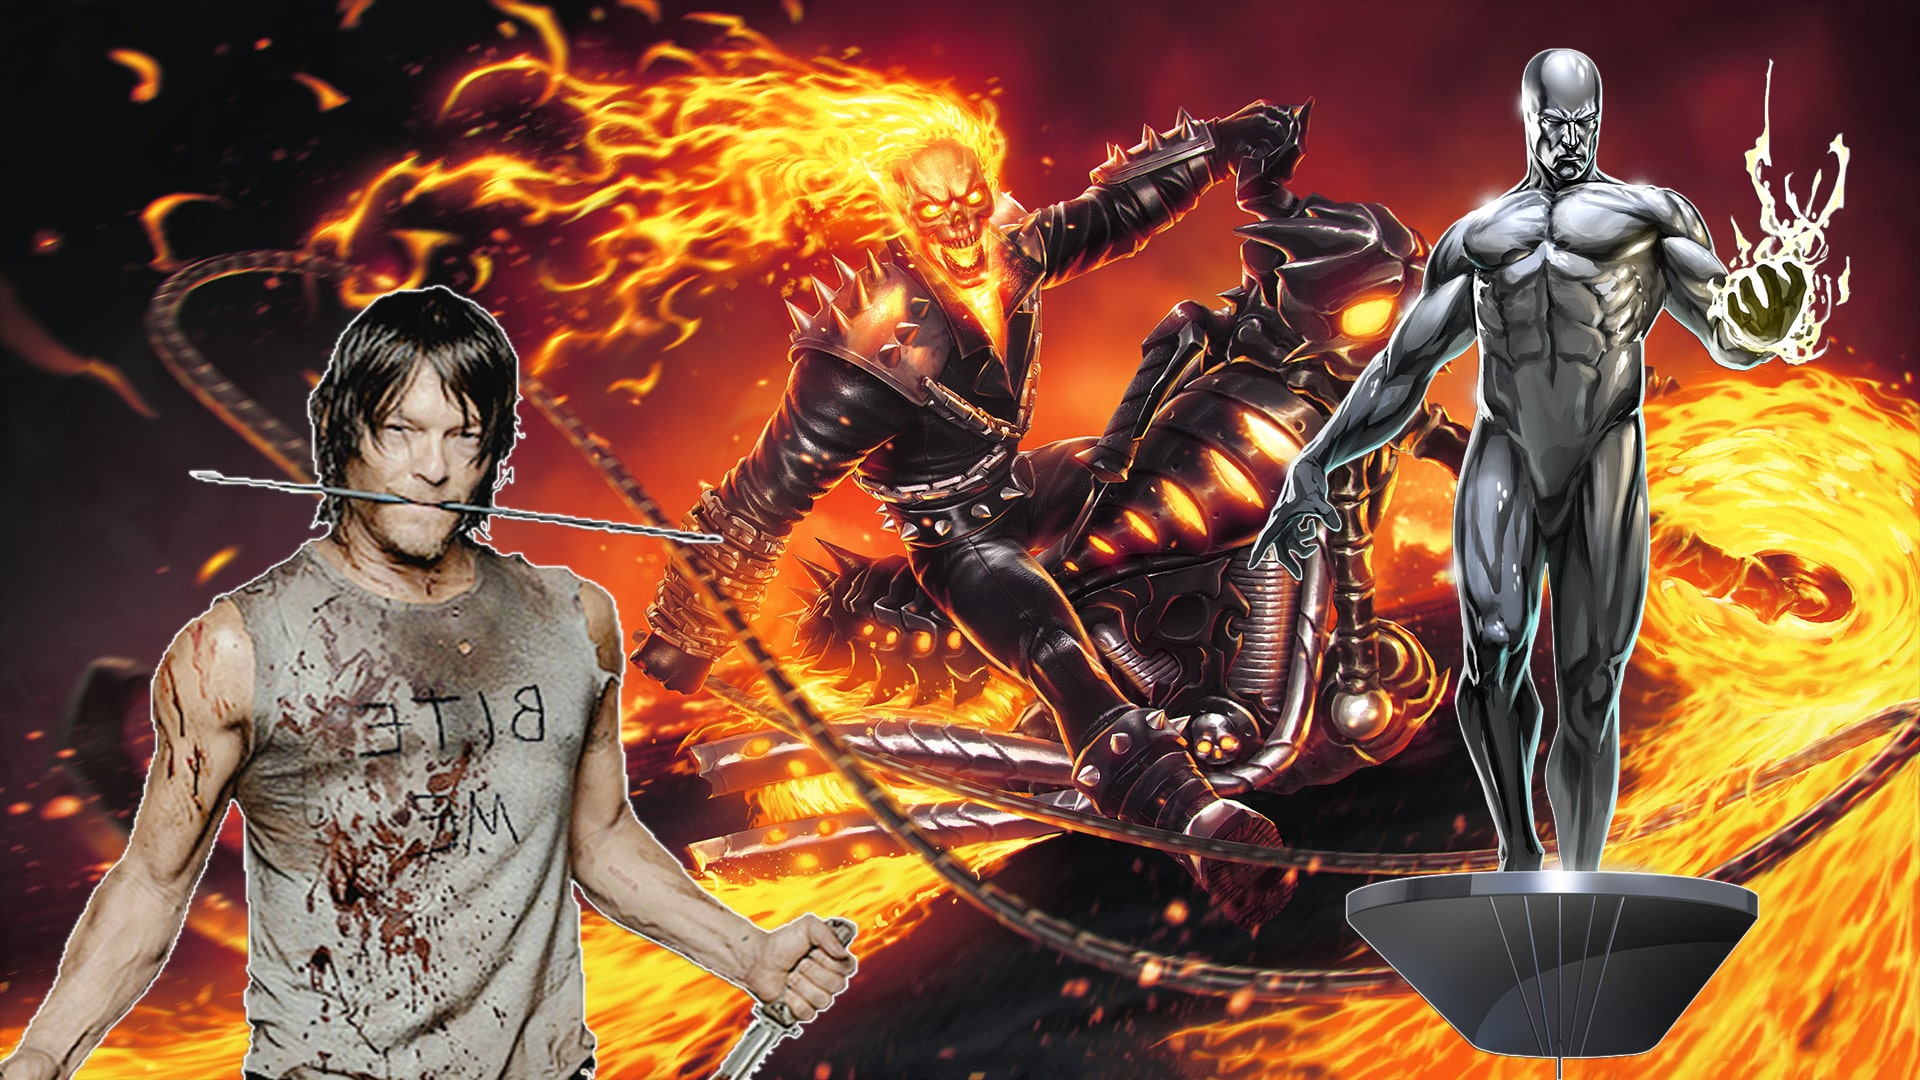 norman-reedus-walking-dead-silver-surfer-ghost-rider-at.jpg (444.6 Kb)